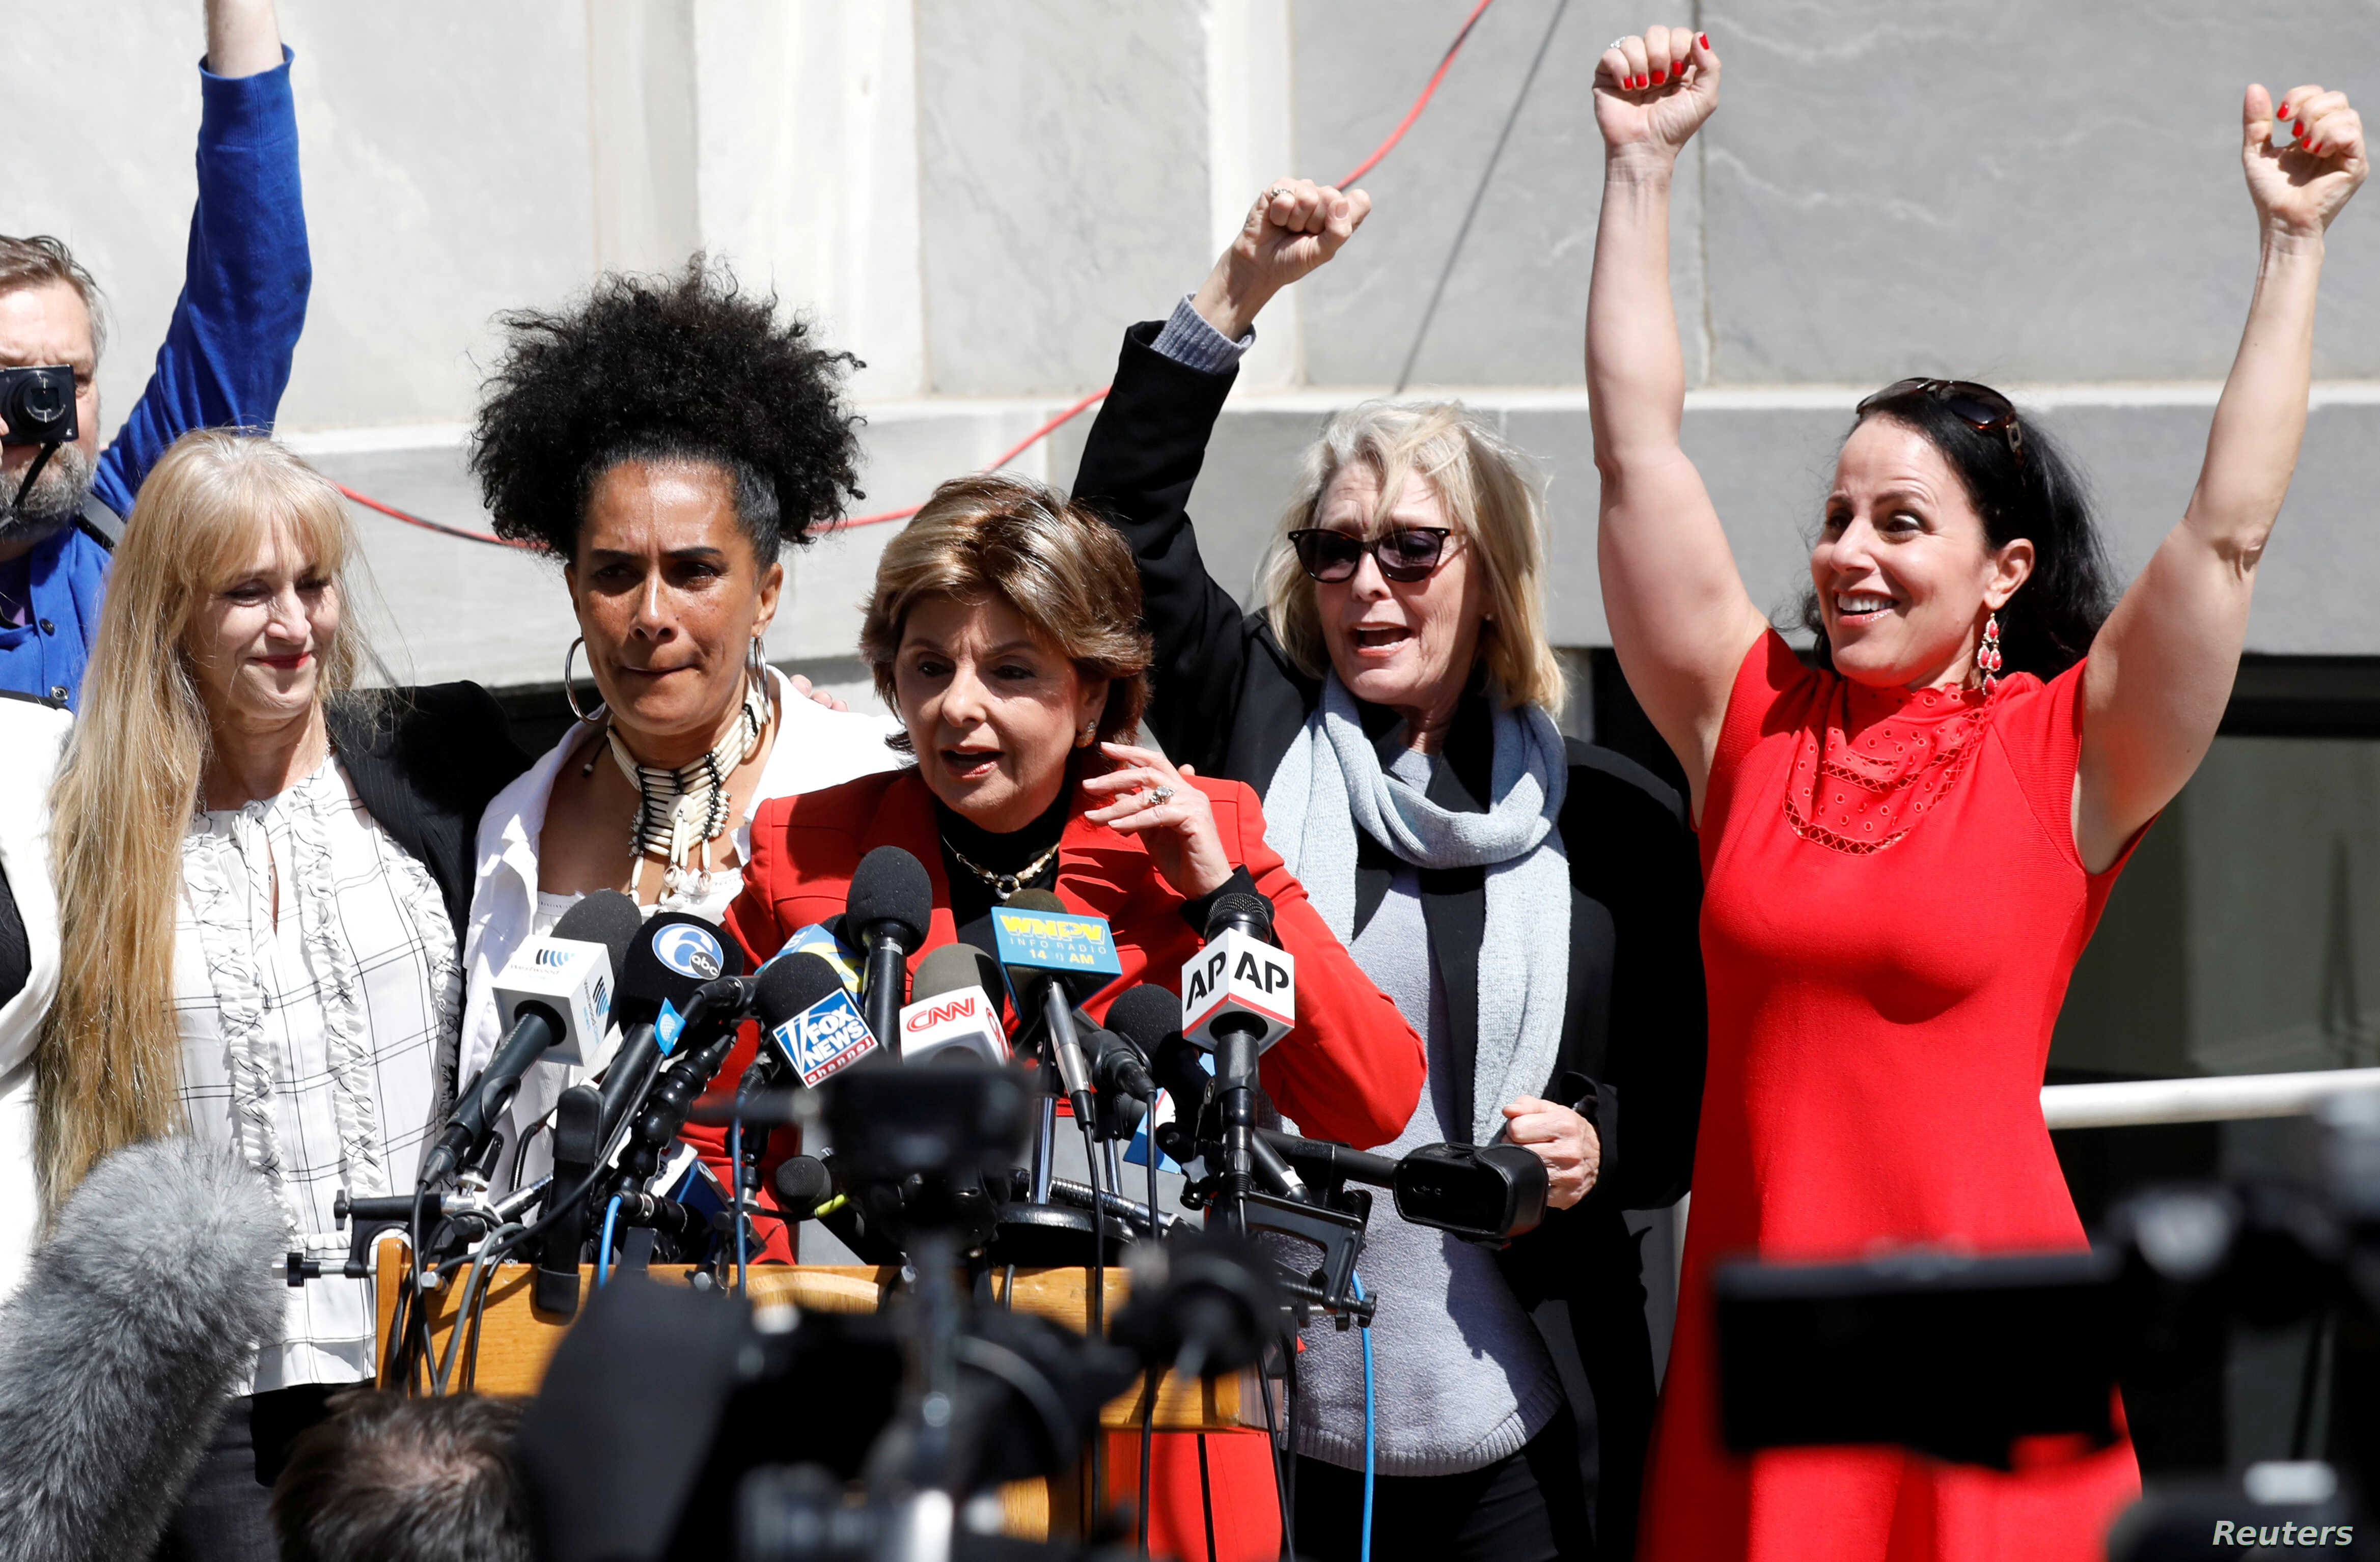 Attorney Gloria Allred stands with accusers of actor and comedian Bill Cosby after a jury convicted him in a sexual assault retrial at the Montgomery County Courthouse in Norristown, Pennsylvania, April 26, 2018.